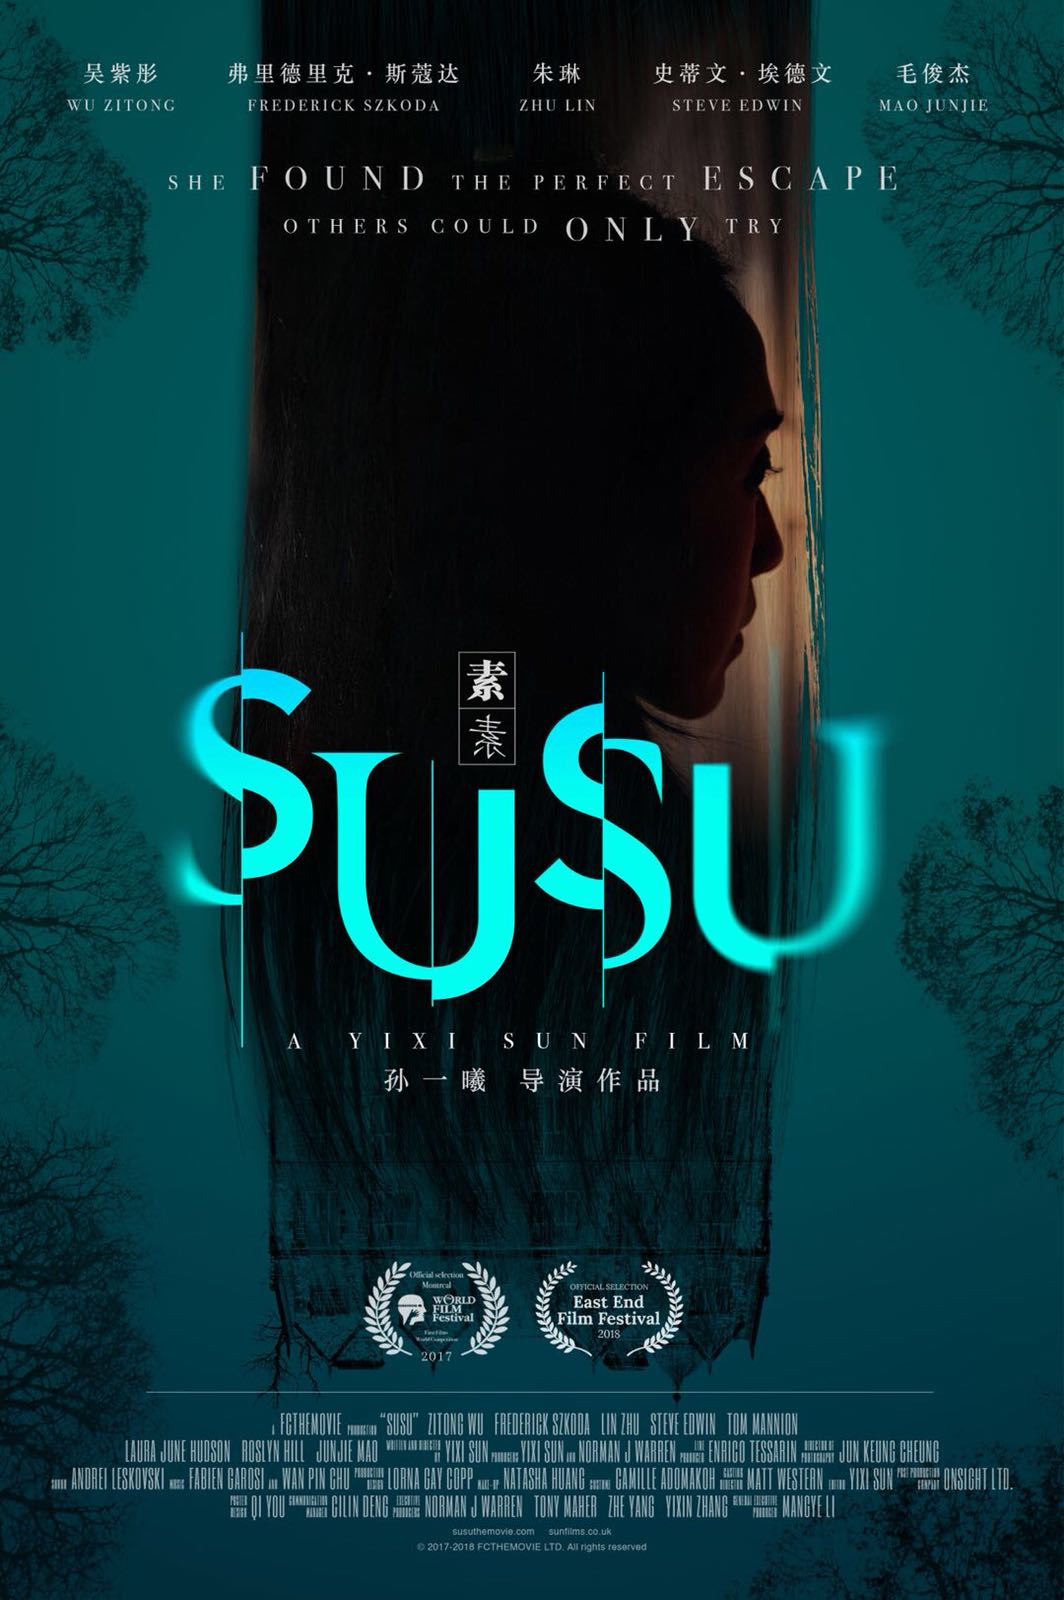 SUSU  the movie selected at Montreal Film Festival 2017 Beijing Film Festival 2018 Berlin Film Festival 2018 London East End Film Festival 2018 Click for trailer